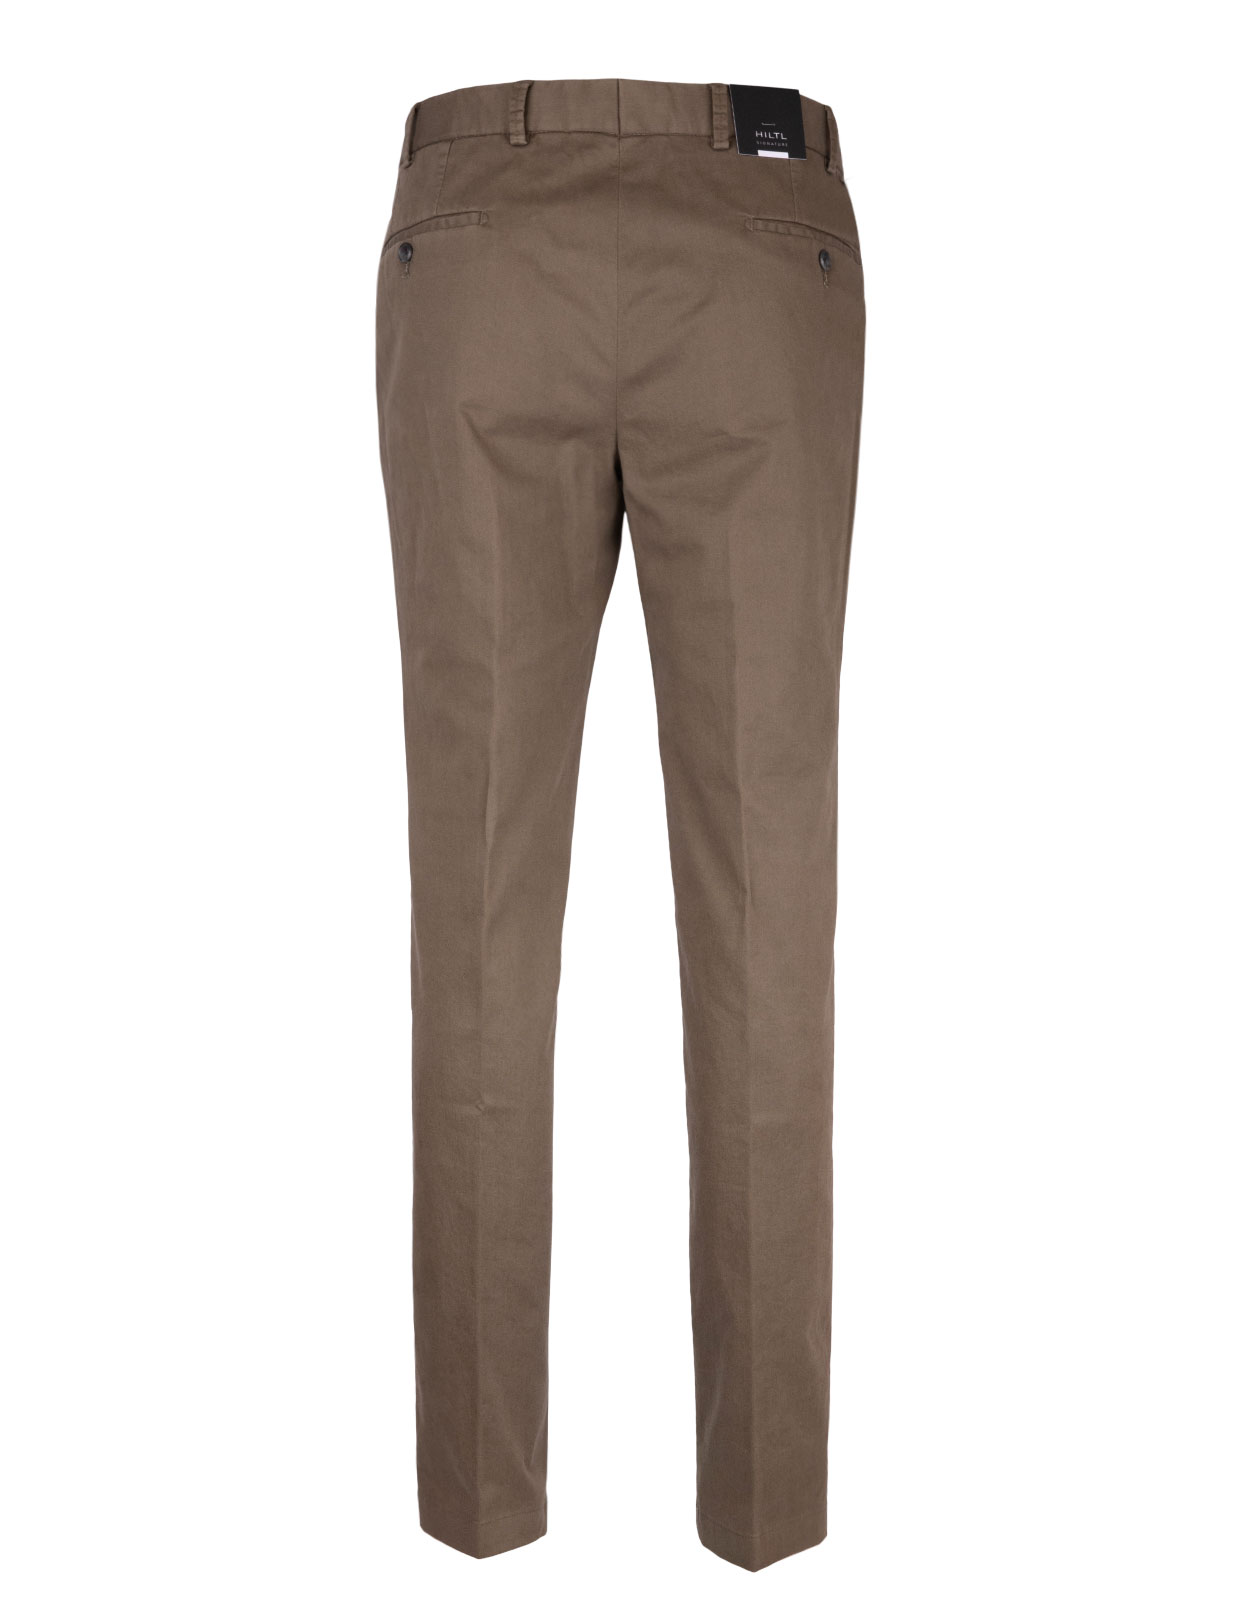 Parma Regular Fit Byxa Cotton Twill Khaki Stl 116